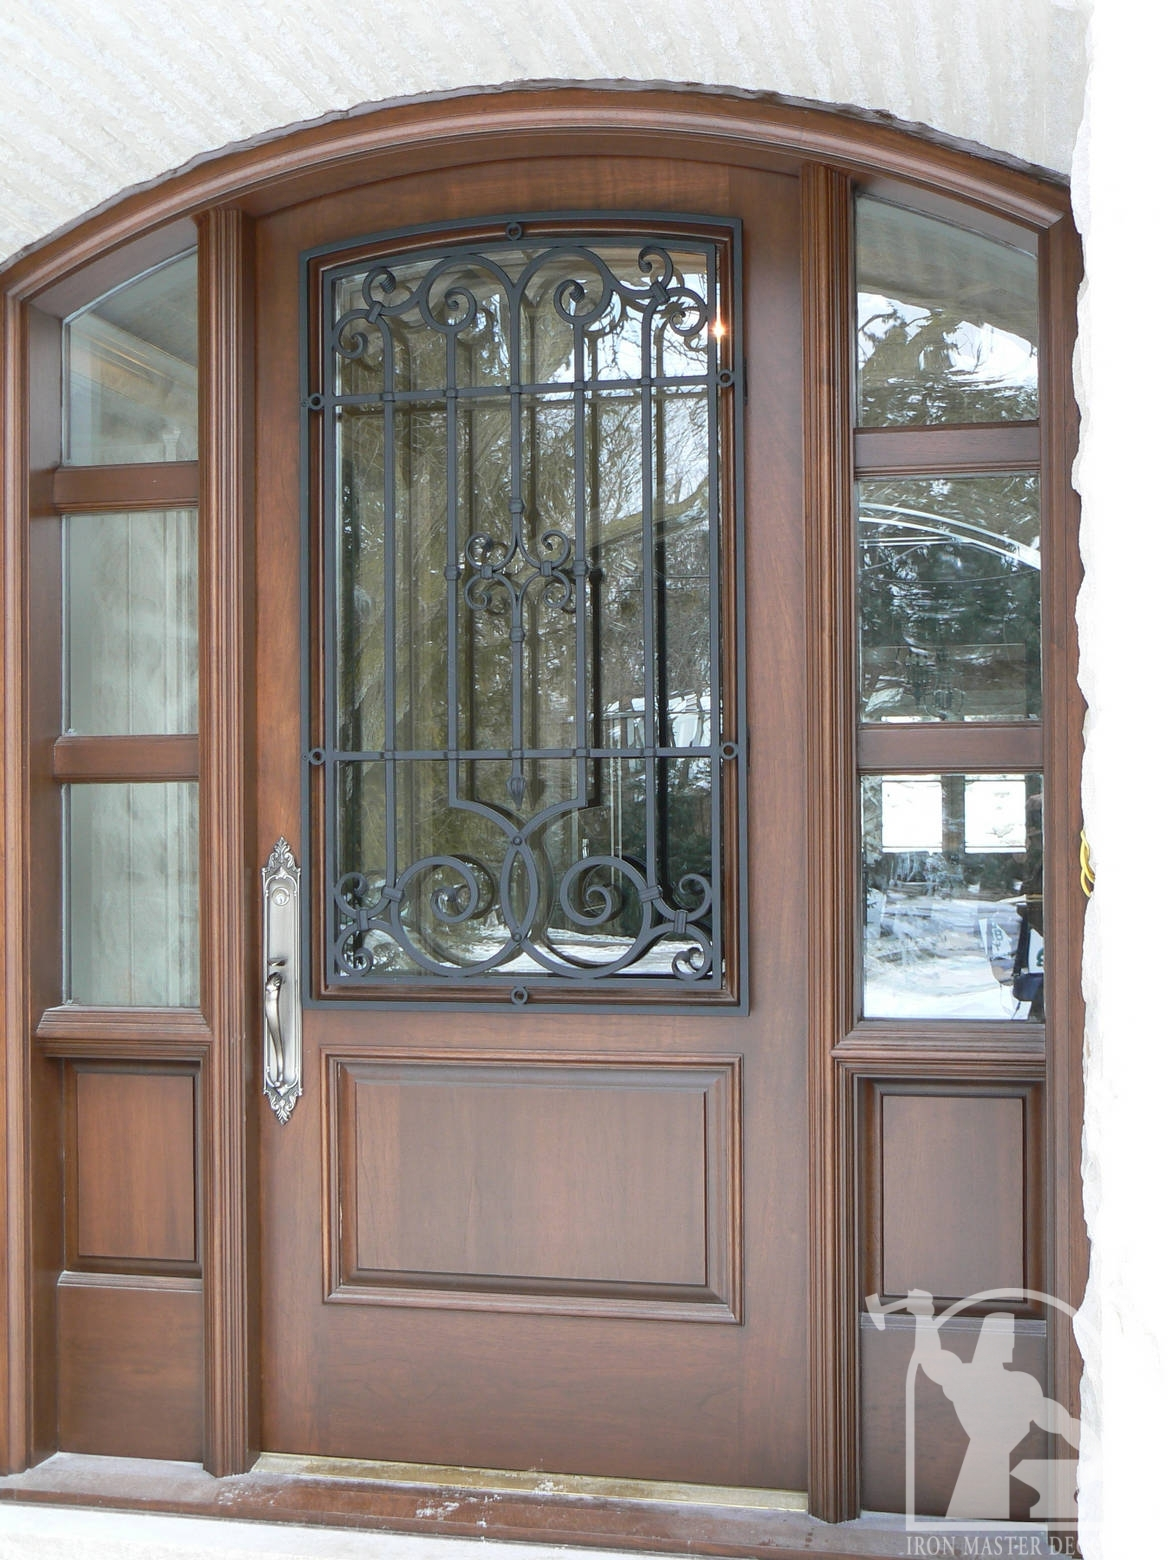 Wrought Iron Front Door Photo Gallery Iron Master